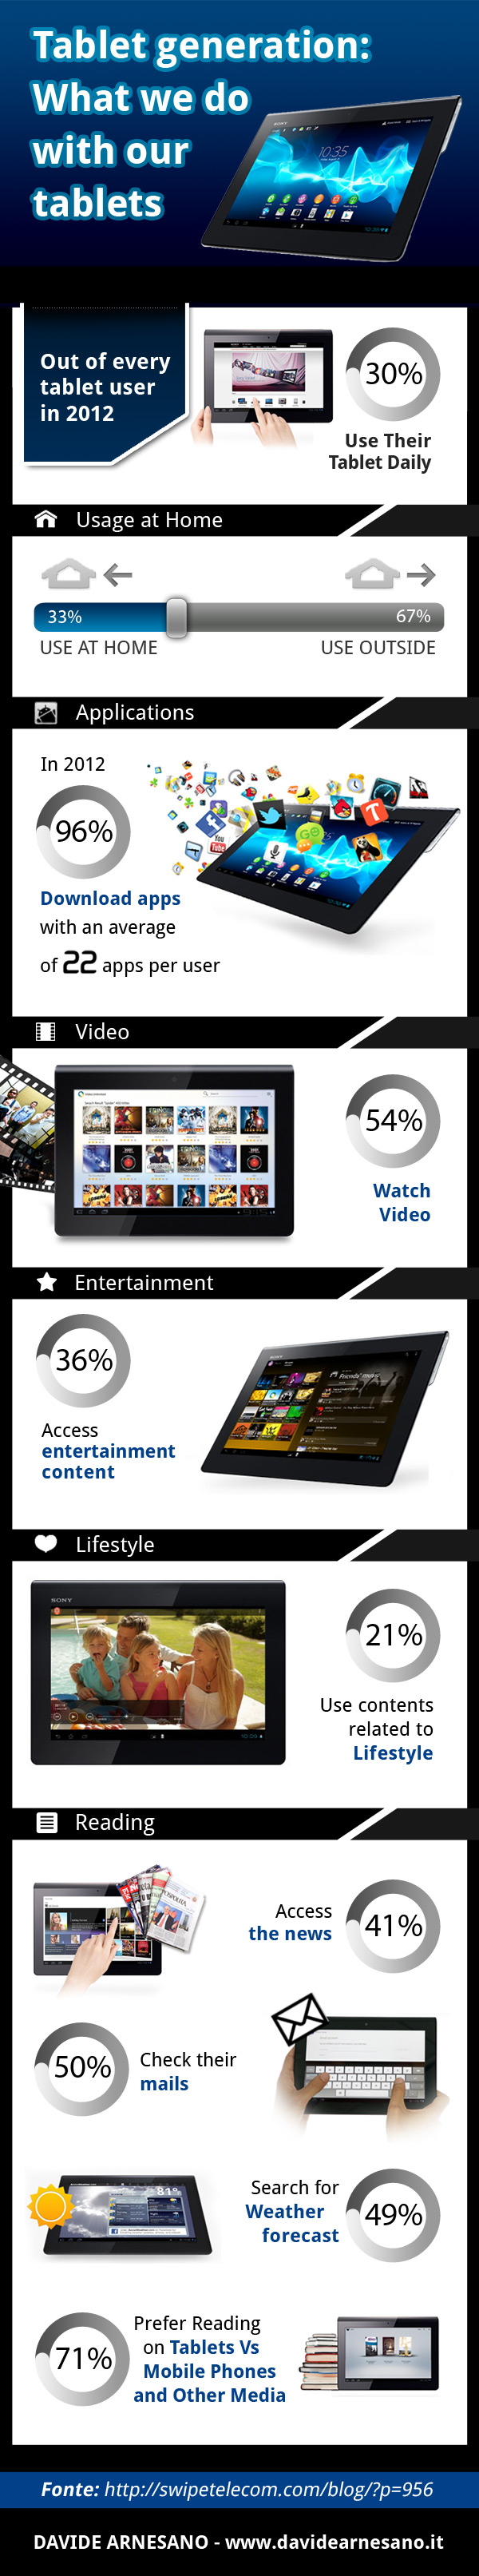 Tablet Sony - Infographic